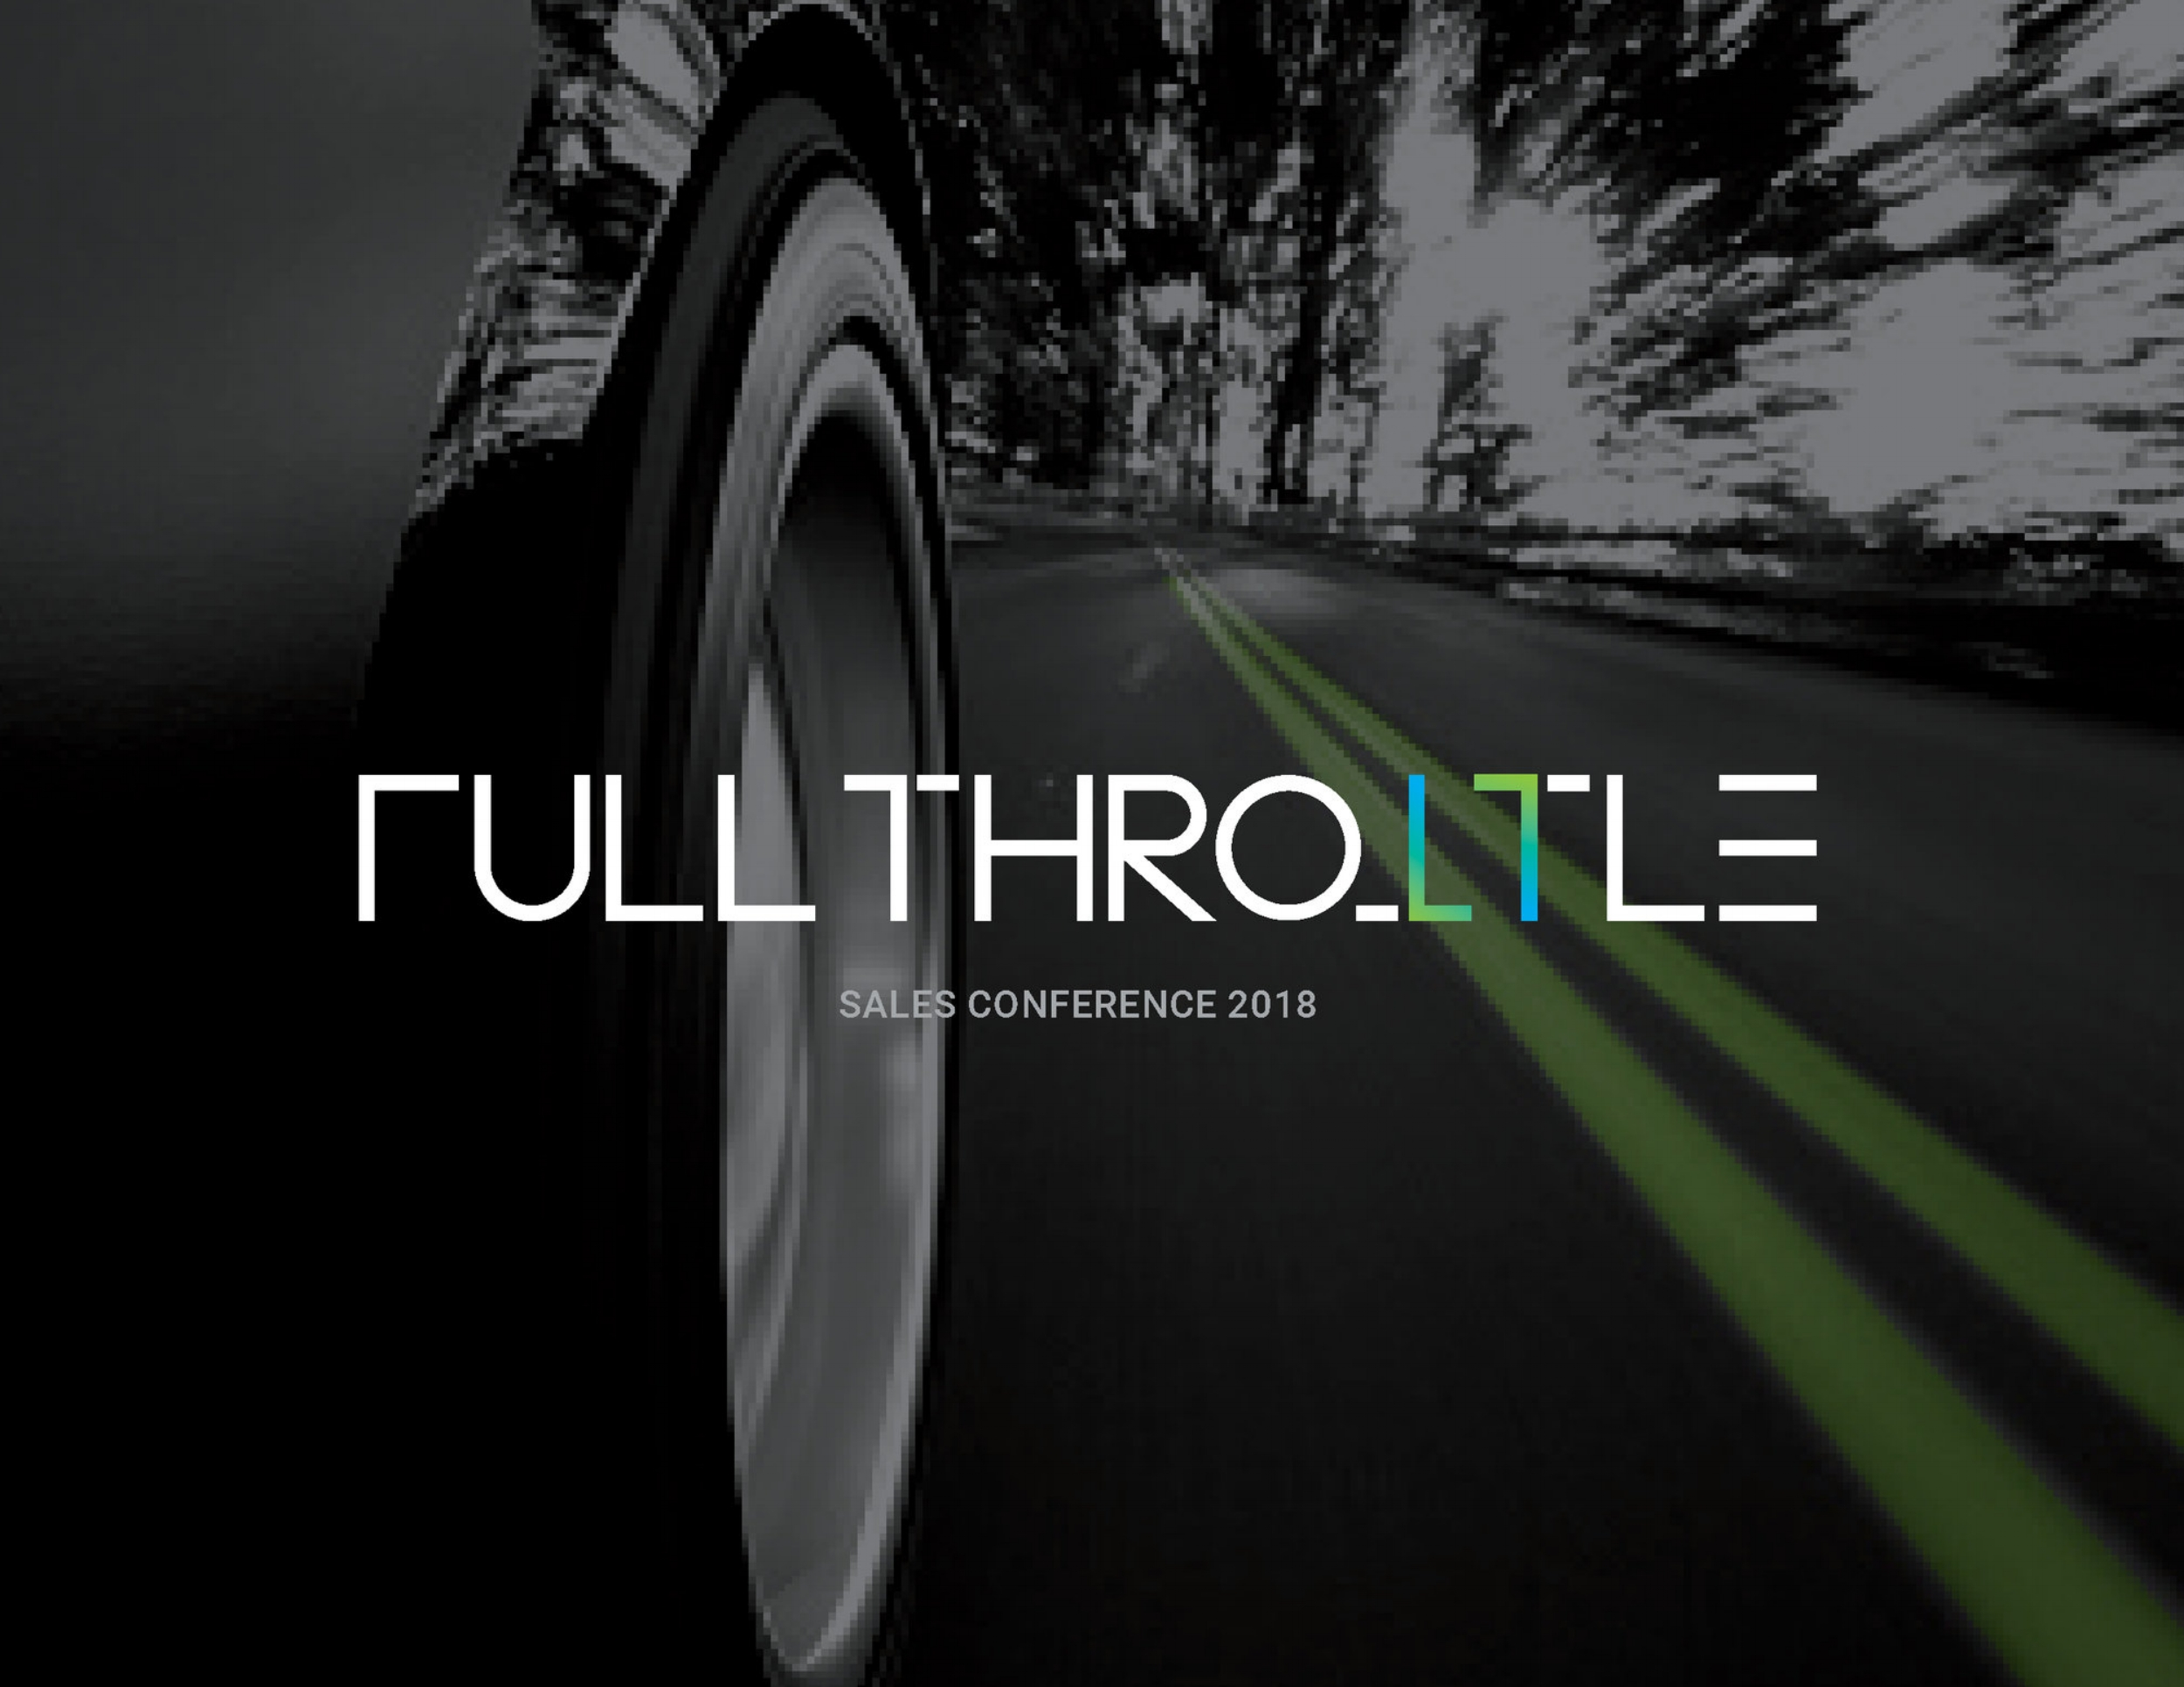 """SAI Global Sales Conference: """"Full Throttle"""" Campaign"""